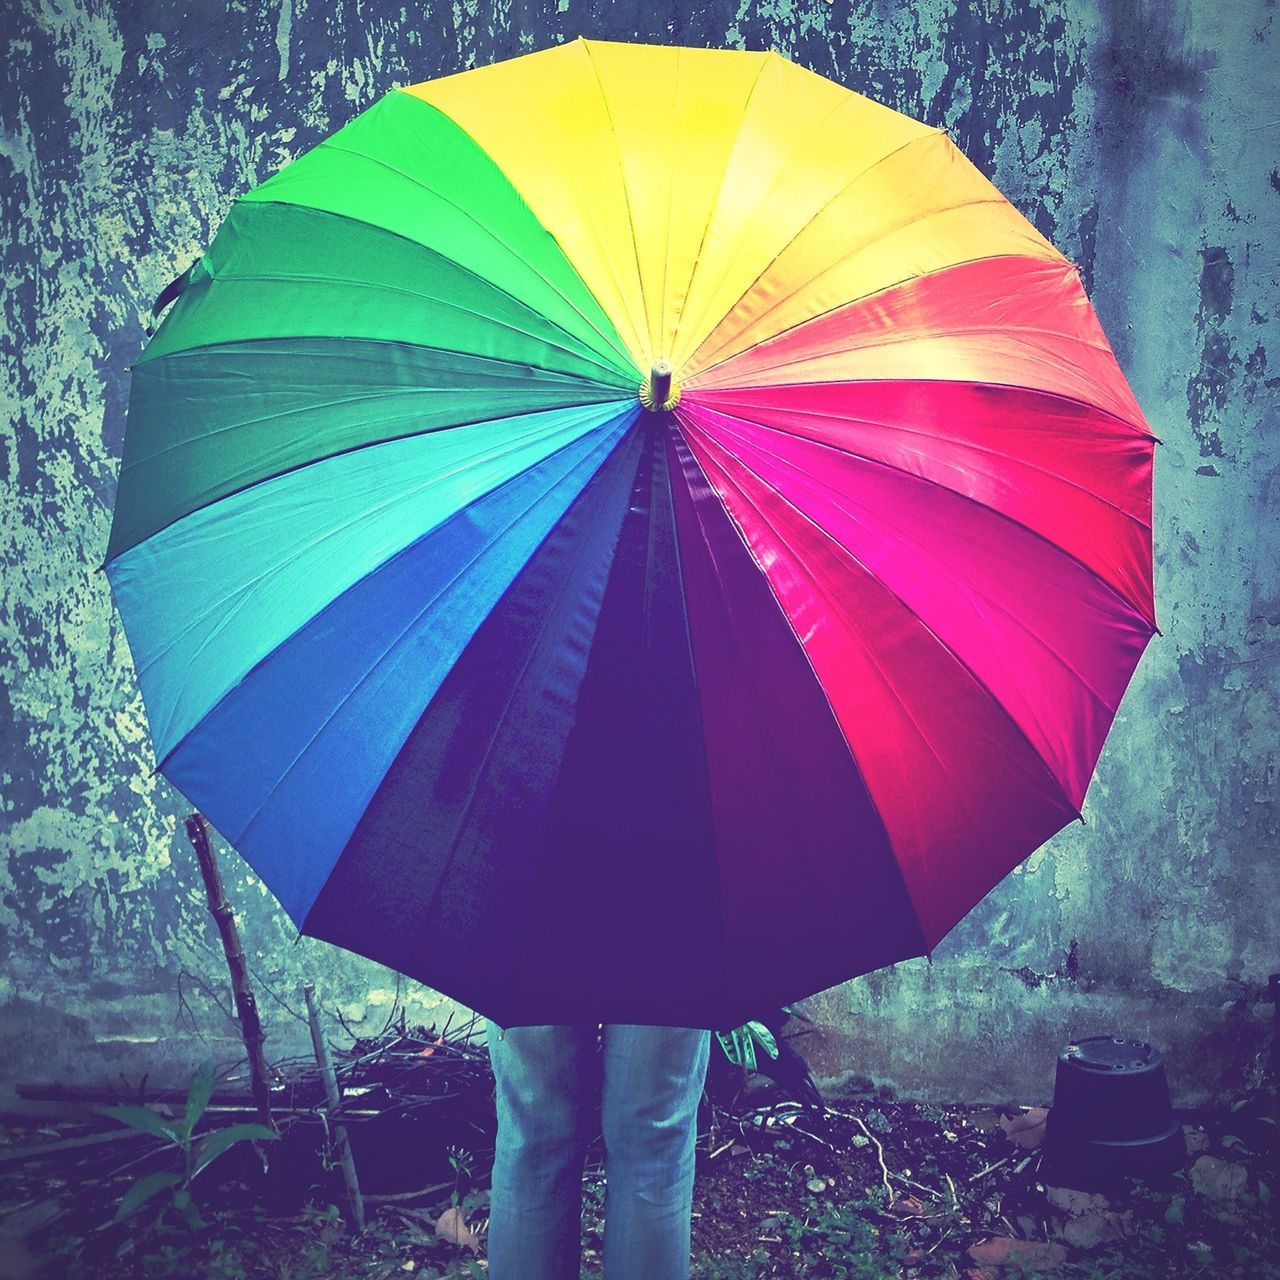 Rear view of person with colorful umbrella